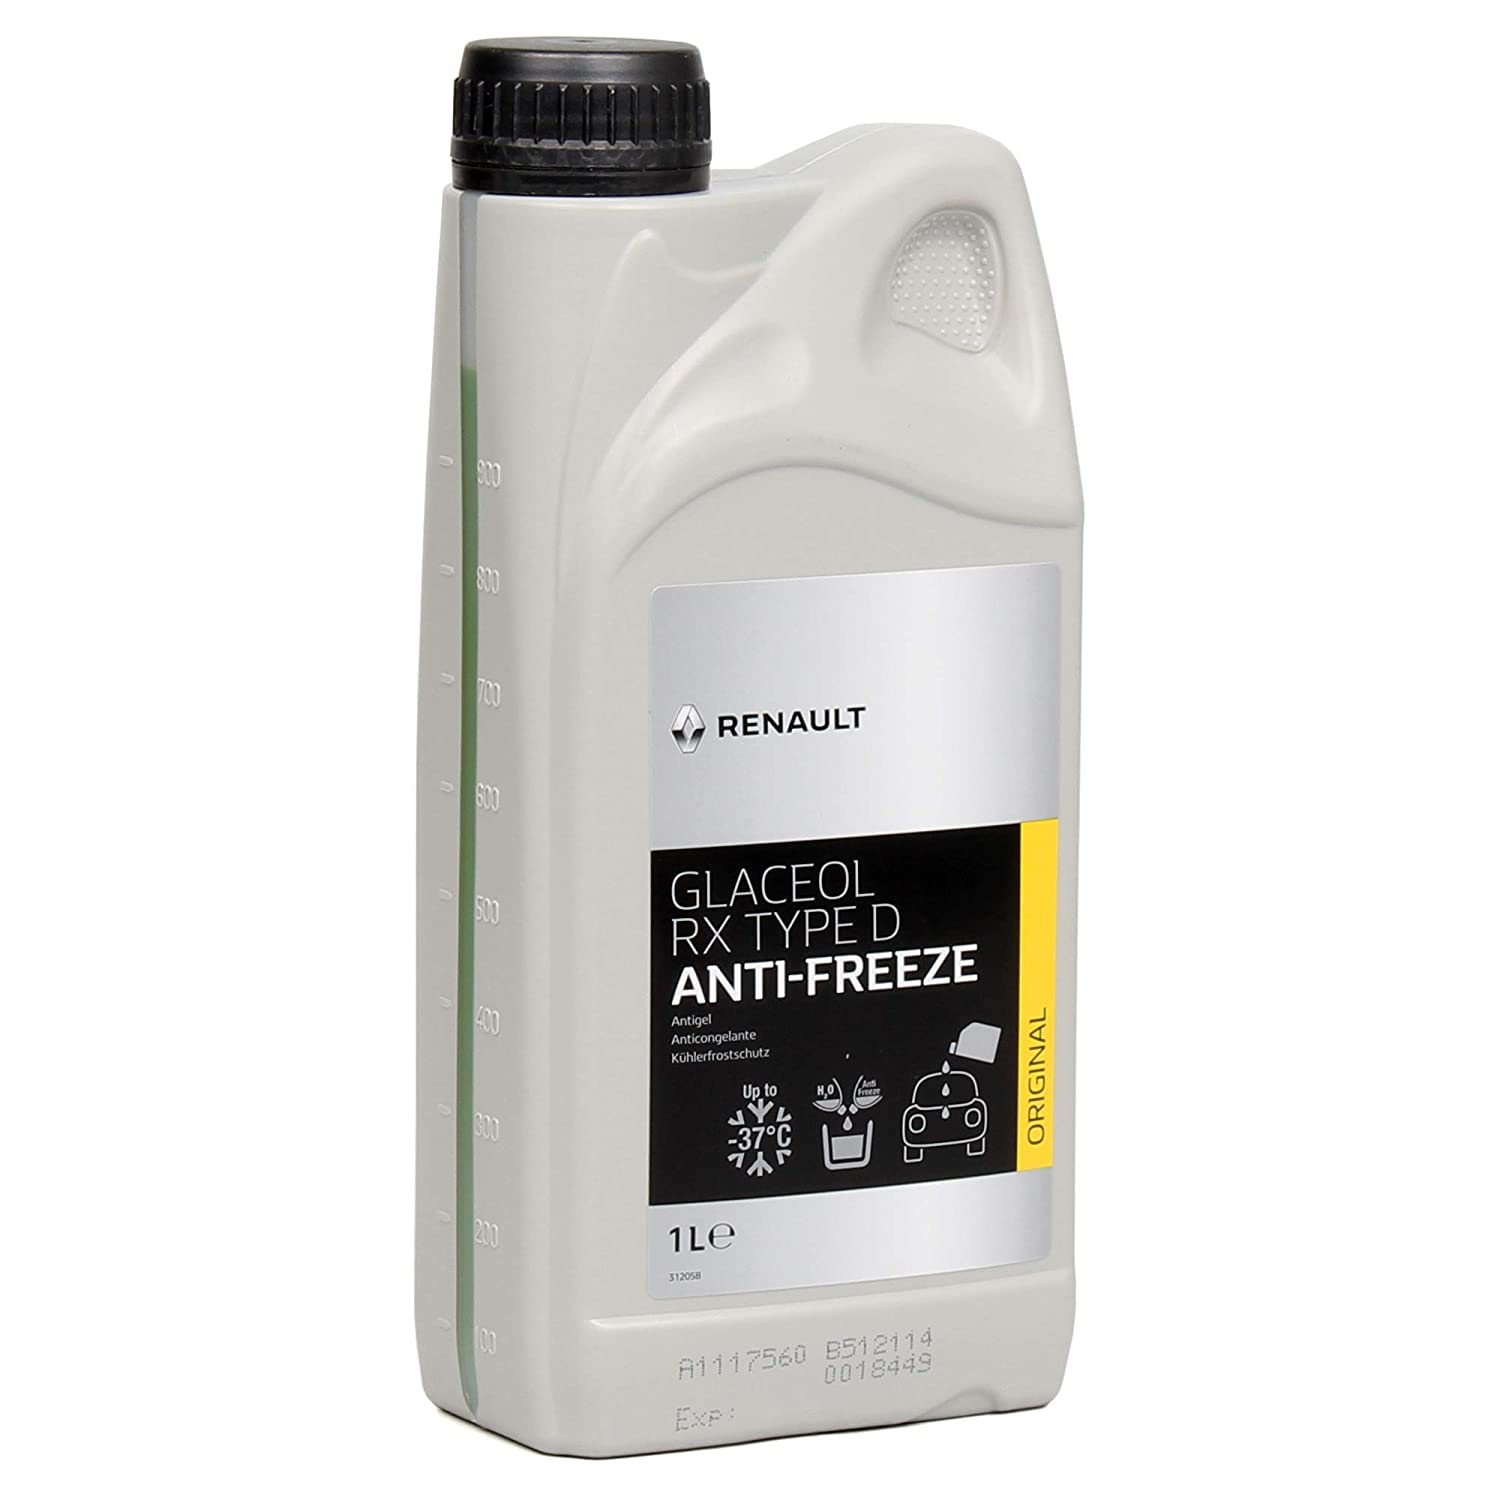 Renault frost protection radiator antifreeze, 1 litre glaceol RX type D green